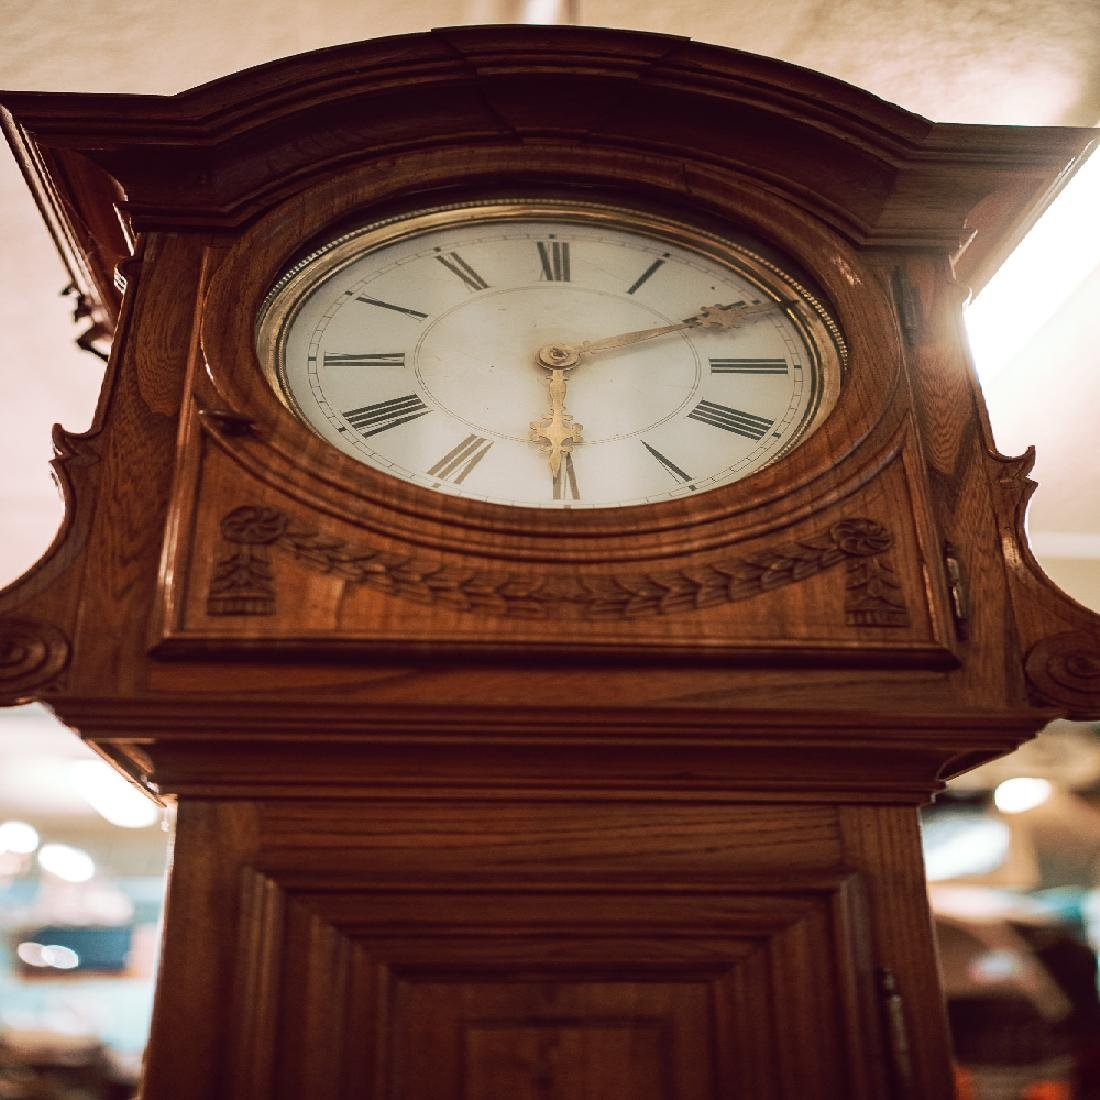 Late 18th C. carved oak long cased clock with original